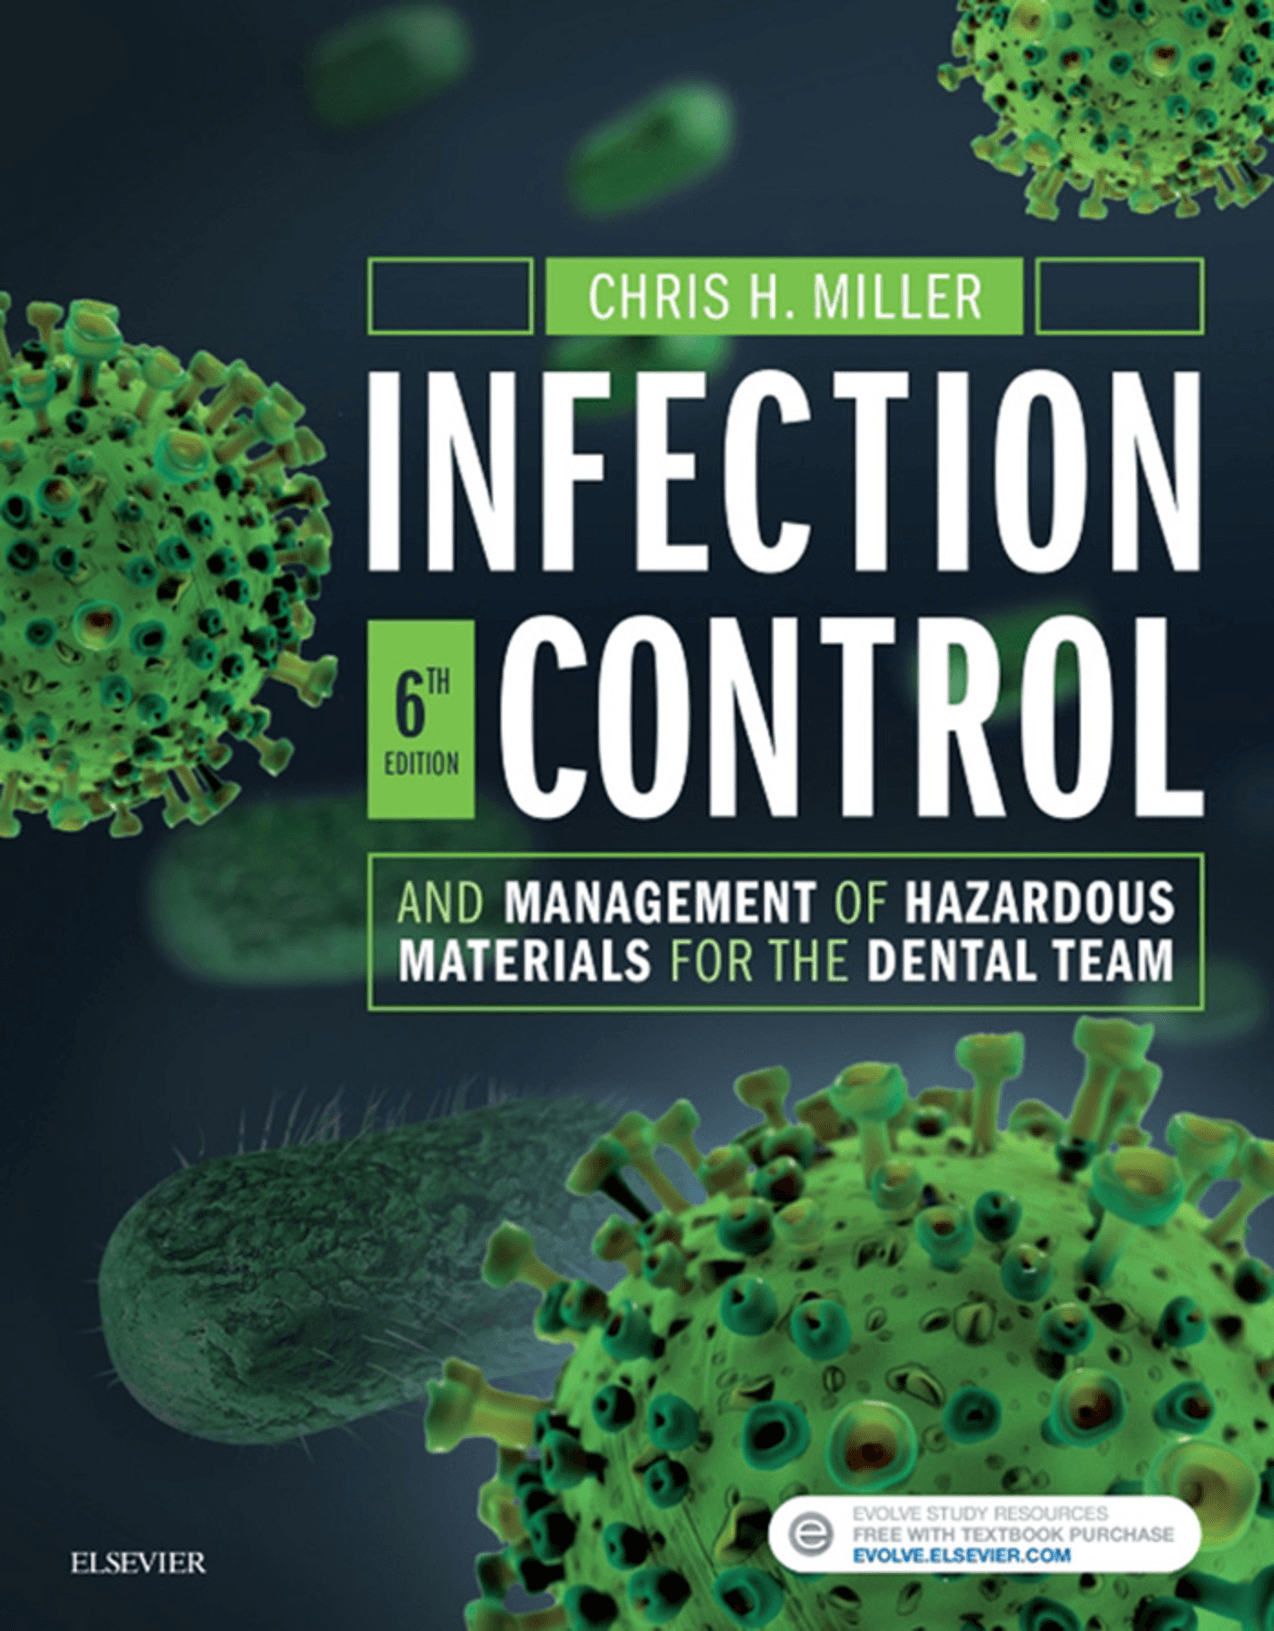 Infection Control And Management Of Hazardous Materials For The Dental Team   Ebook